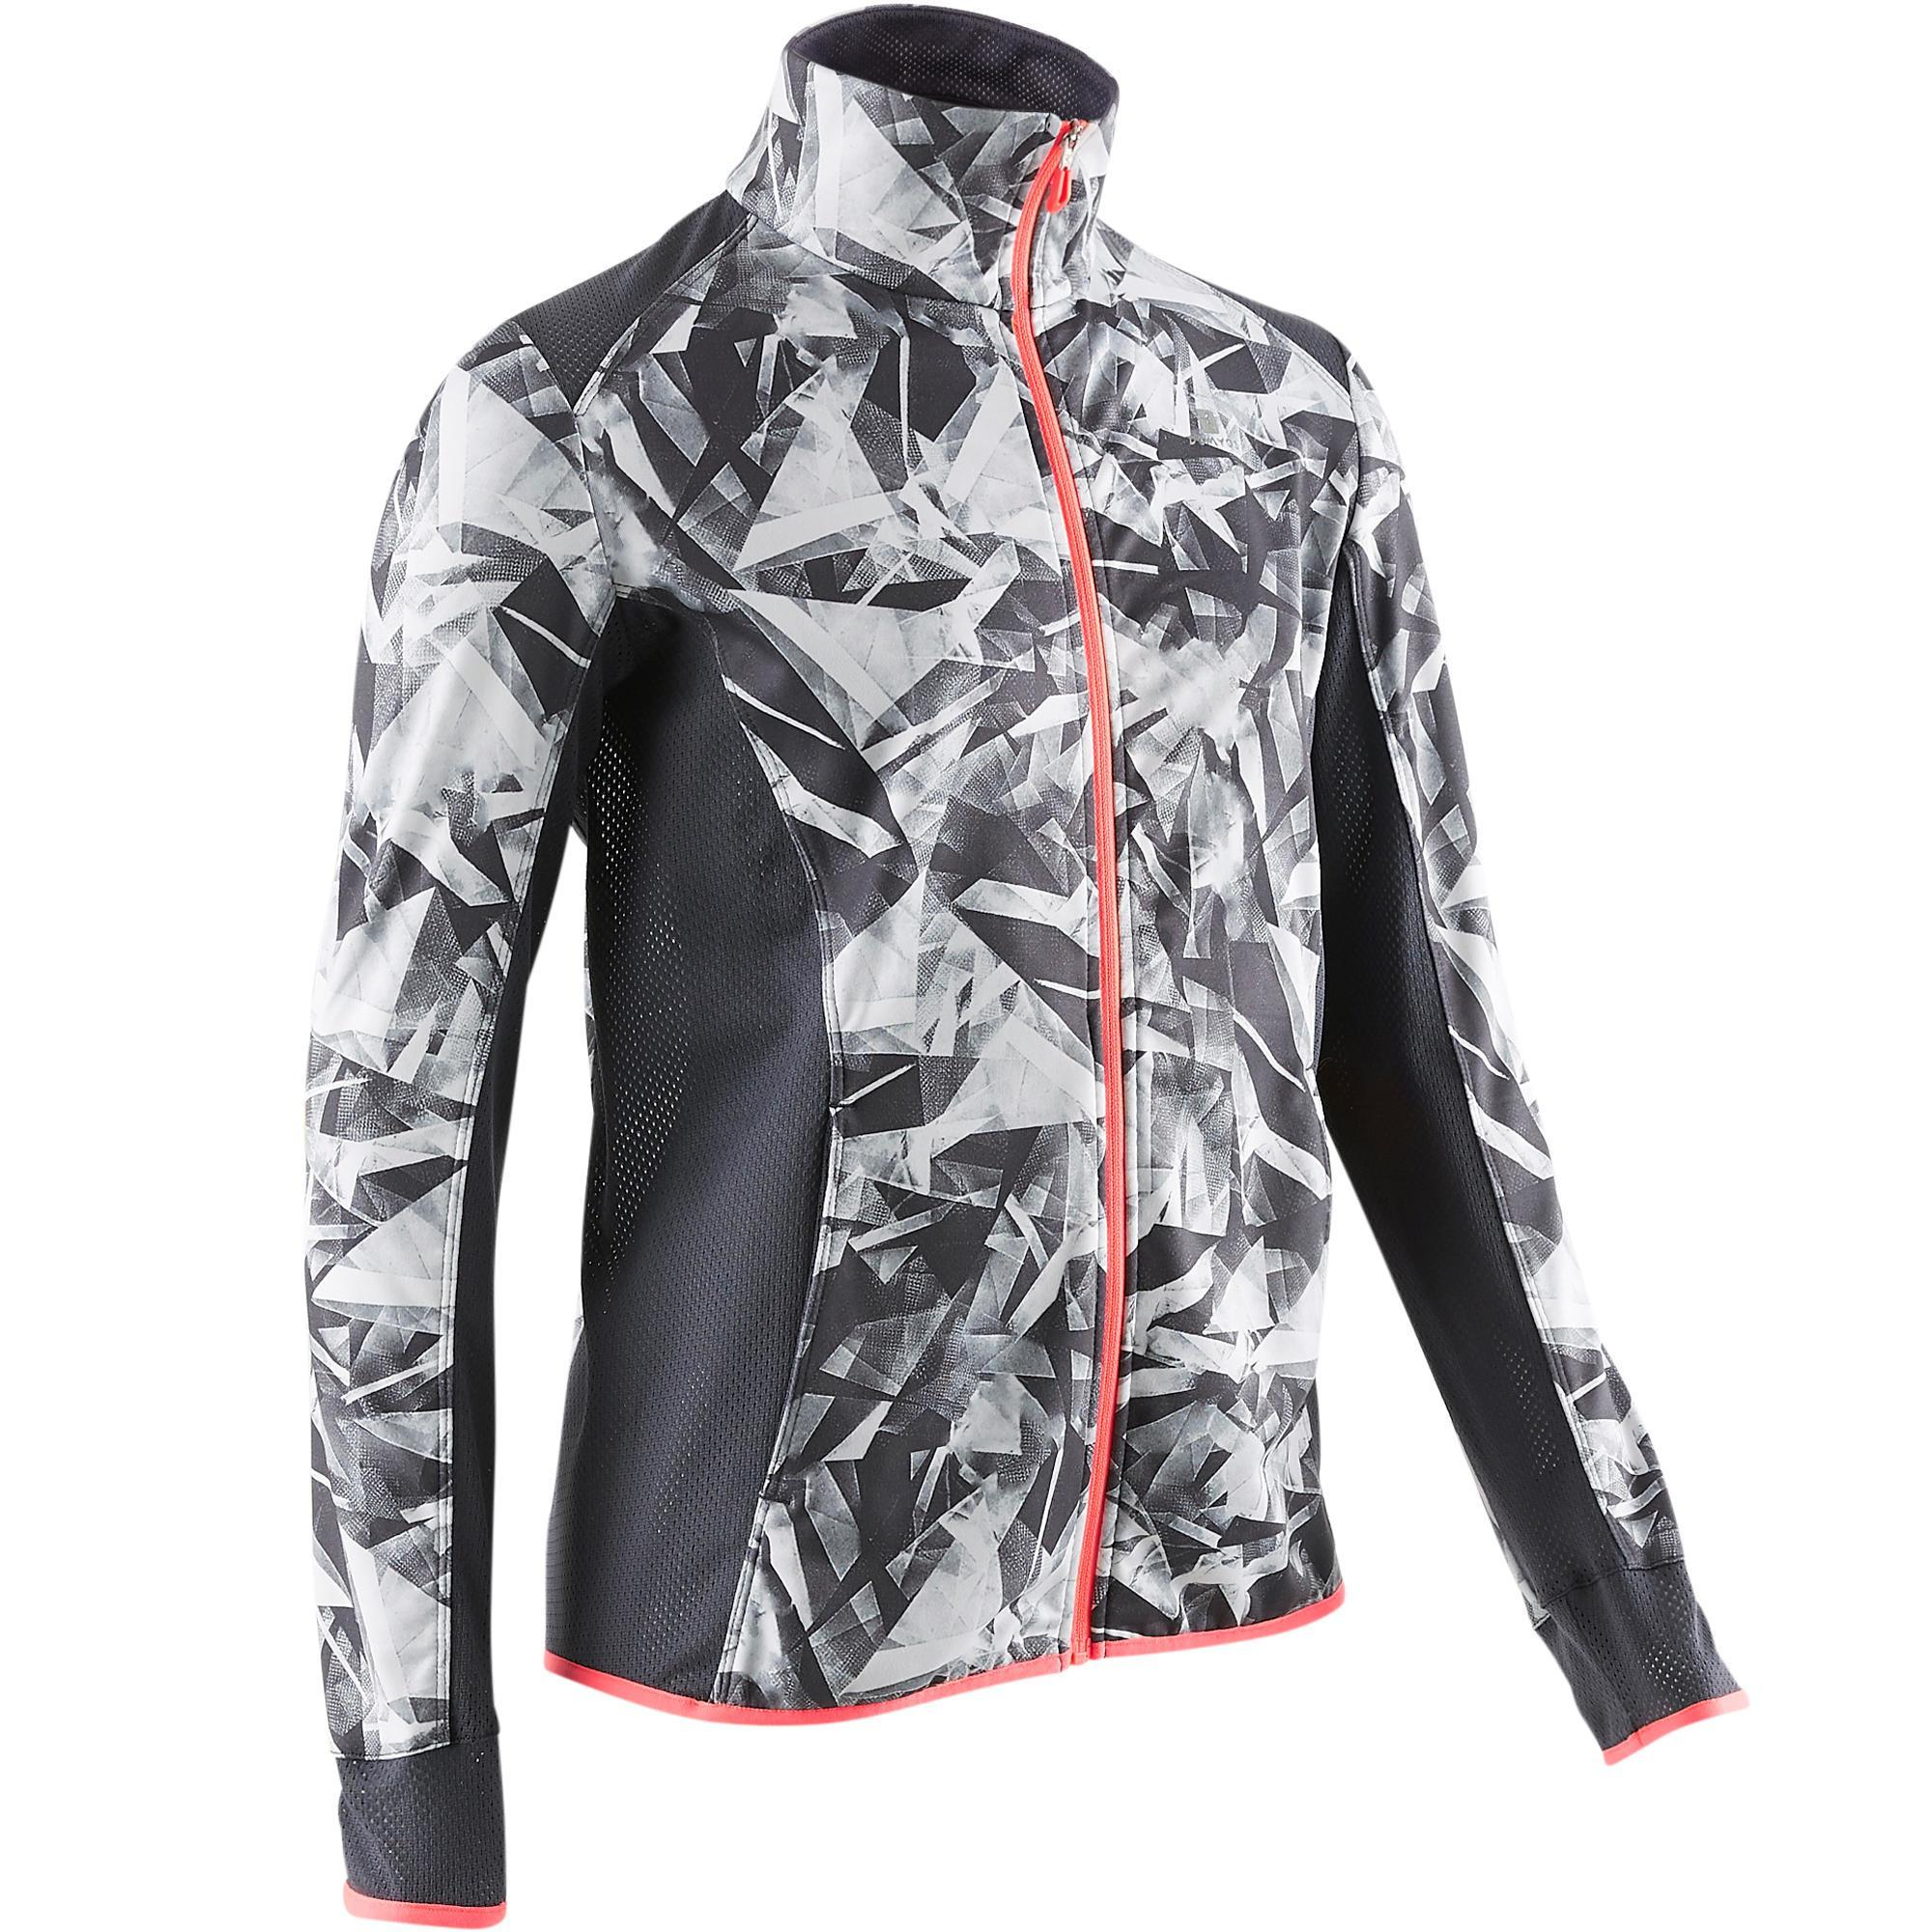 Trainingsjacke S900 Gym Kinder weiß mit Print